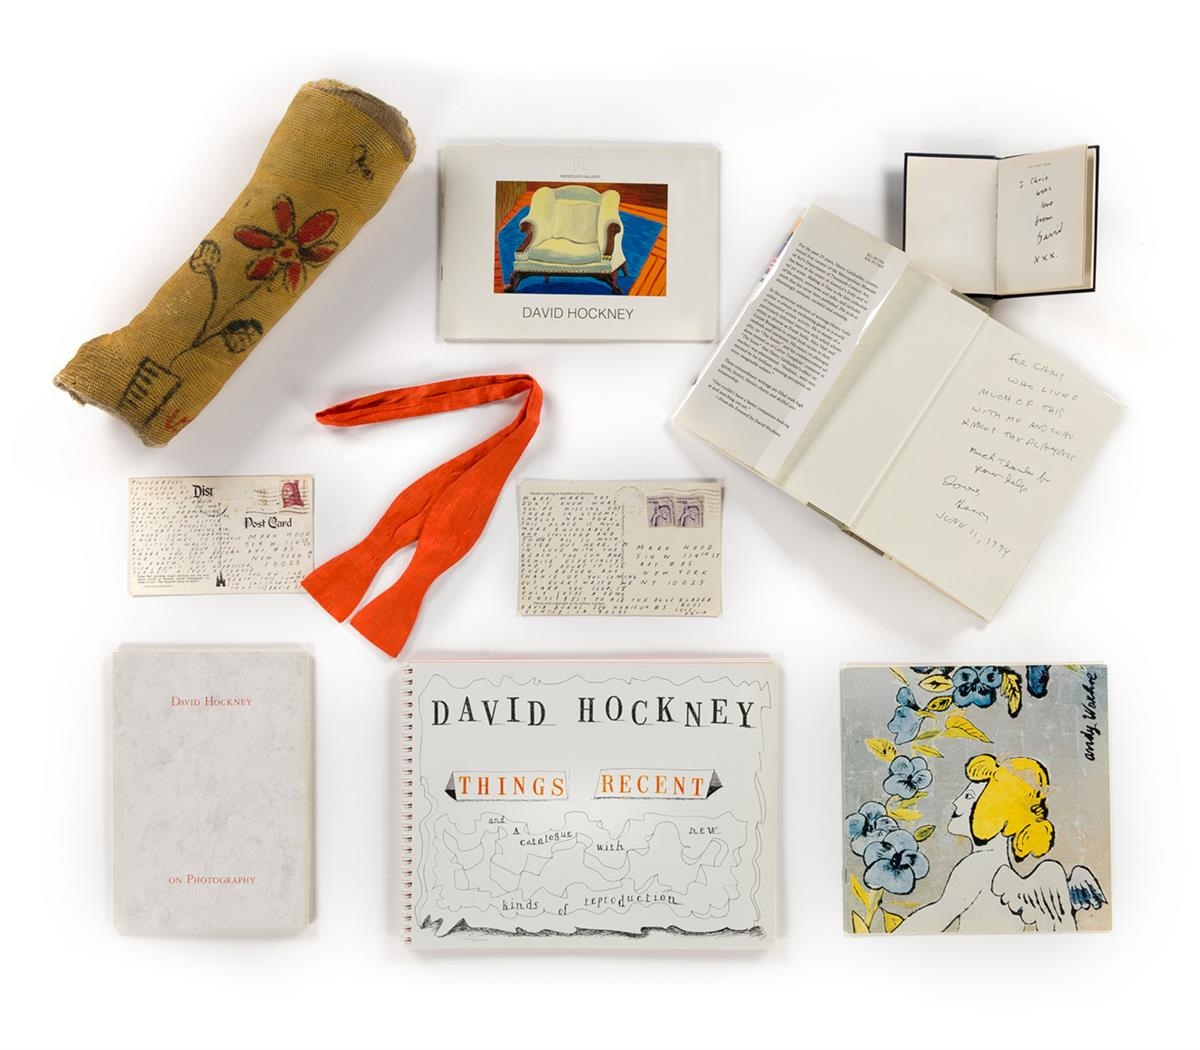 DAVID-HOCKNEY-(1937---)-Collection-of-Ephemera-Including-2-Postcards-and-an-Illustrated-Arm-Cast